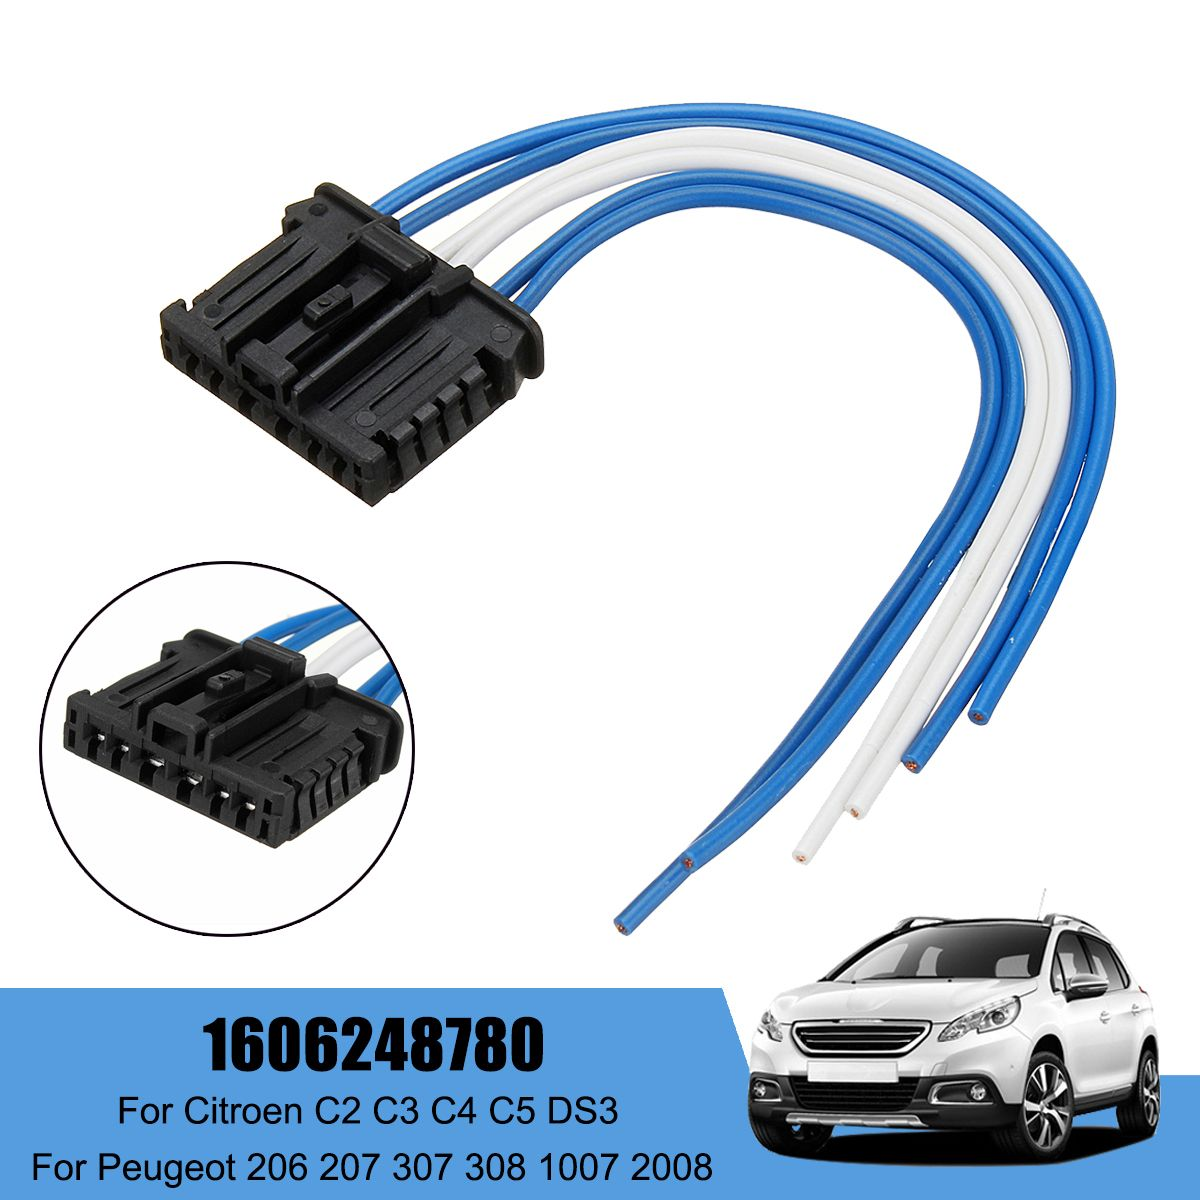 Awe Inspiring Rear Tail Light Loom Wiring Harness Connector For Peugeot 206 207 Wiring Digital Resources Funapmognl